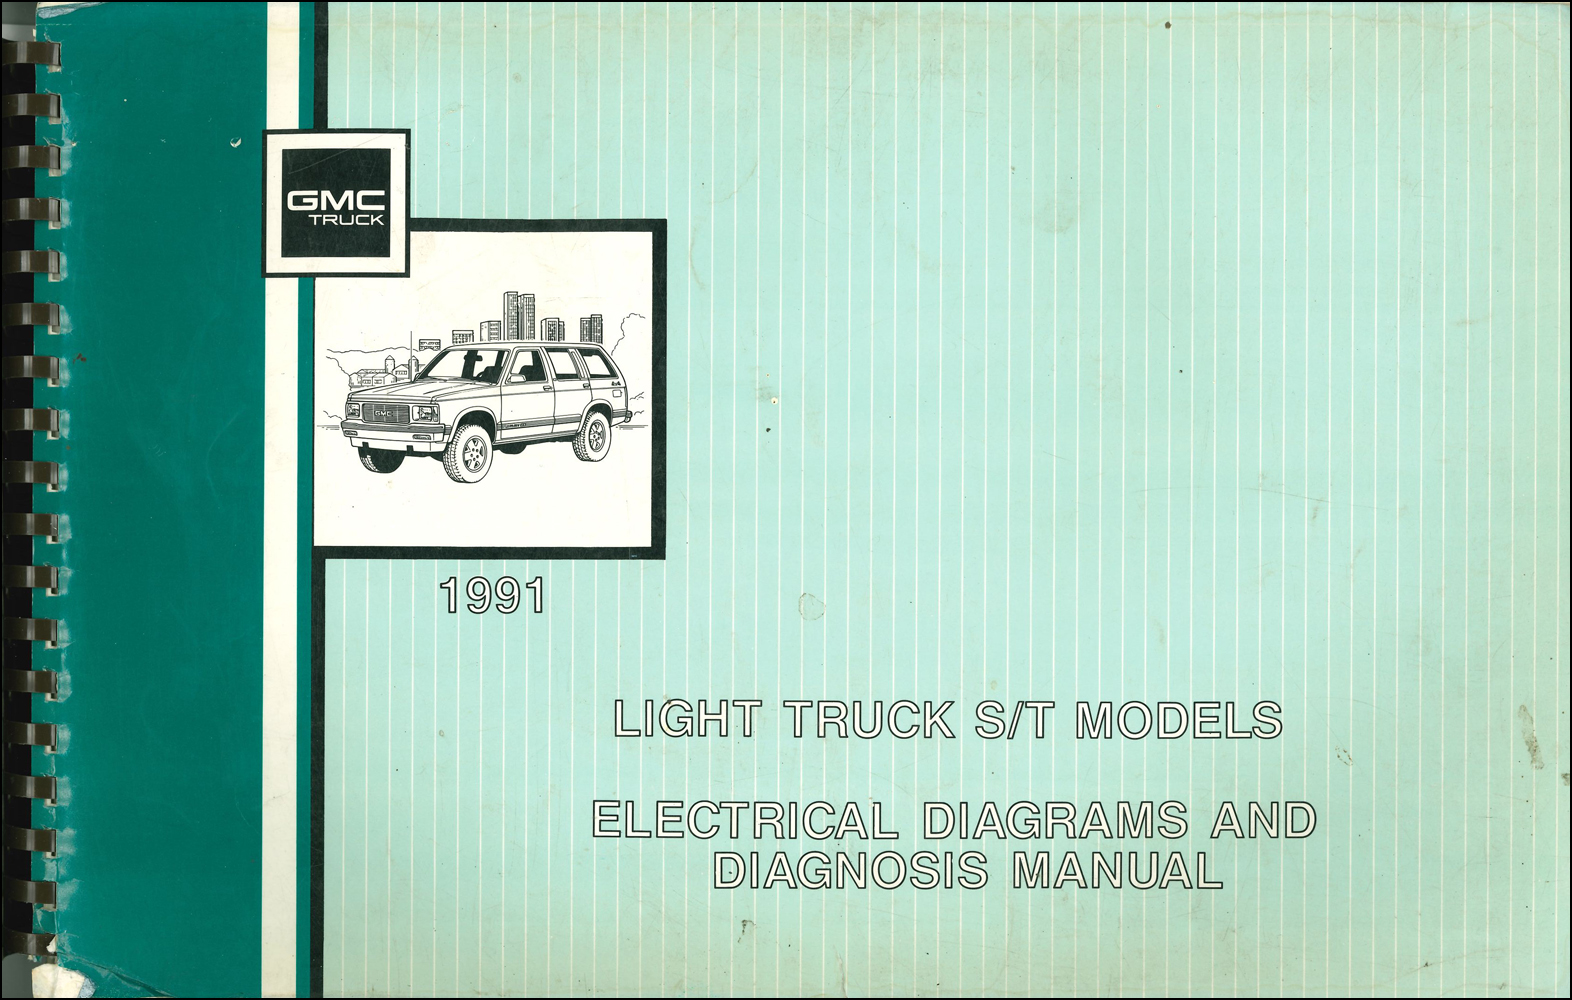 2003 Gmc Truck Wiring Diagram Manual Guide